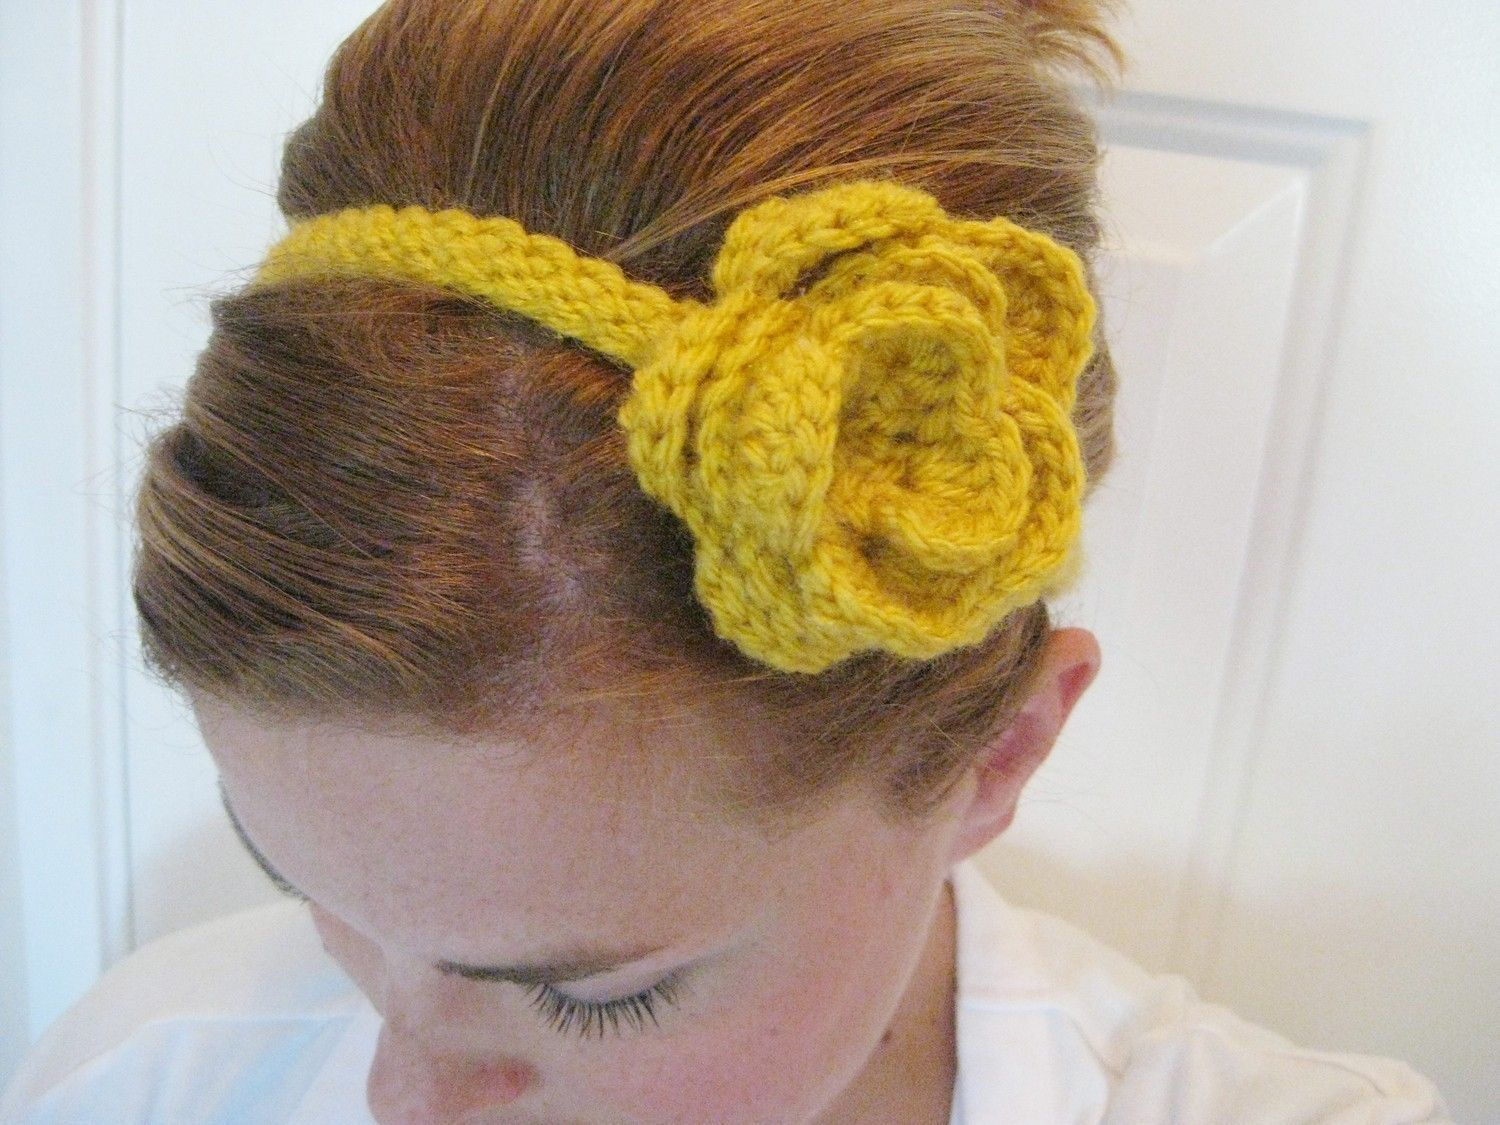 Just made this crochet headband. So easy | Crochet | Pinterest ...